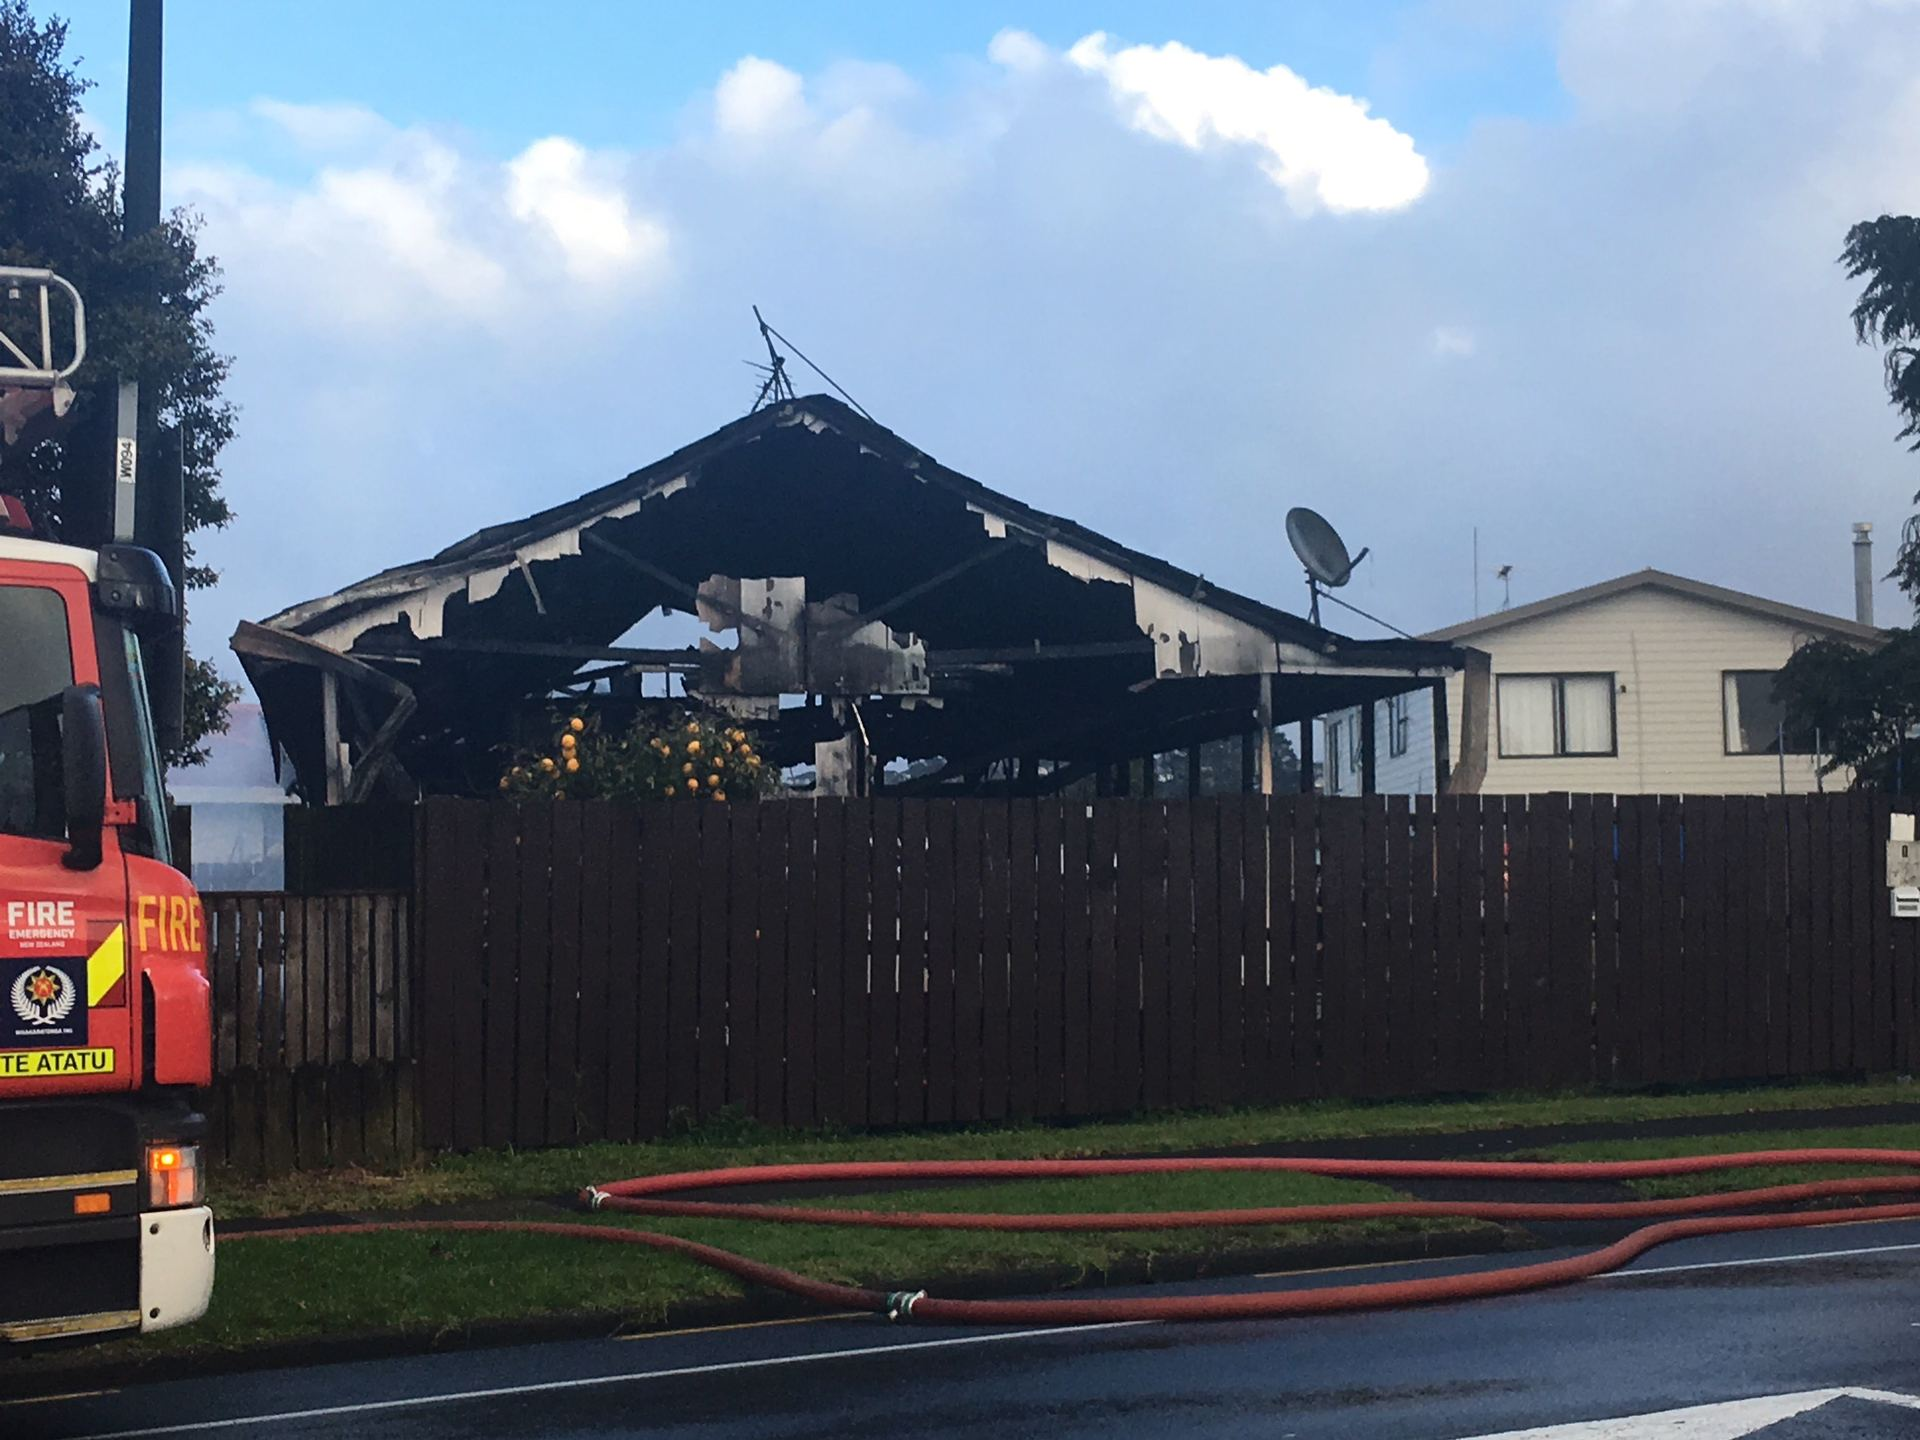 House gutted by fire in Ranui, West Auckland - NZ Herald